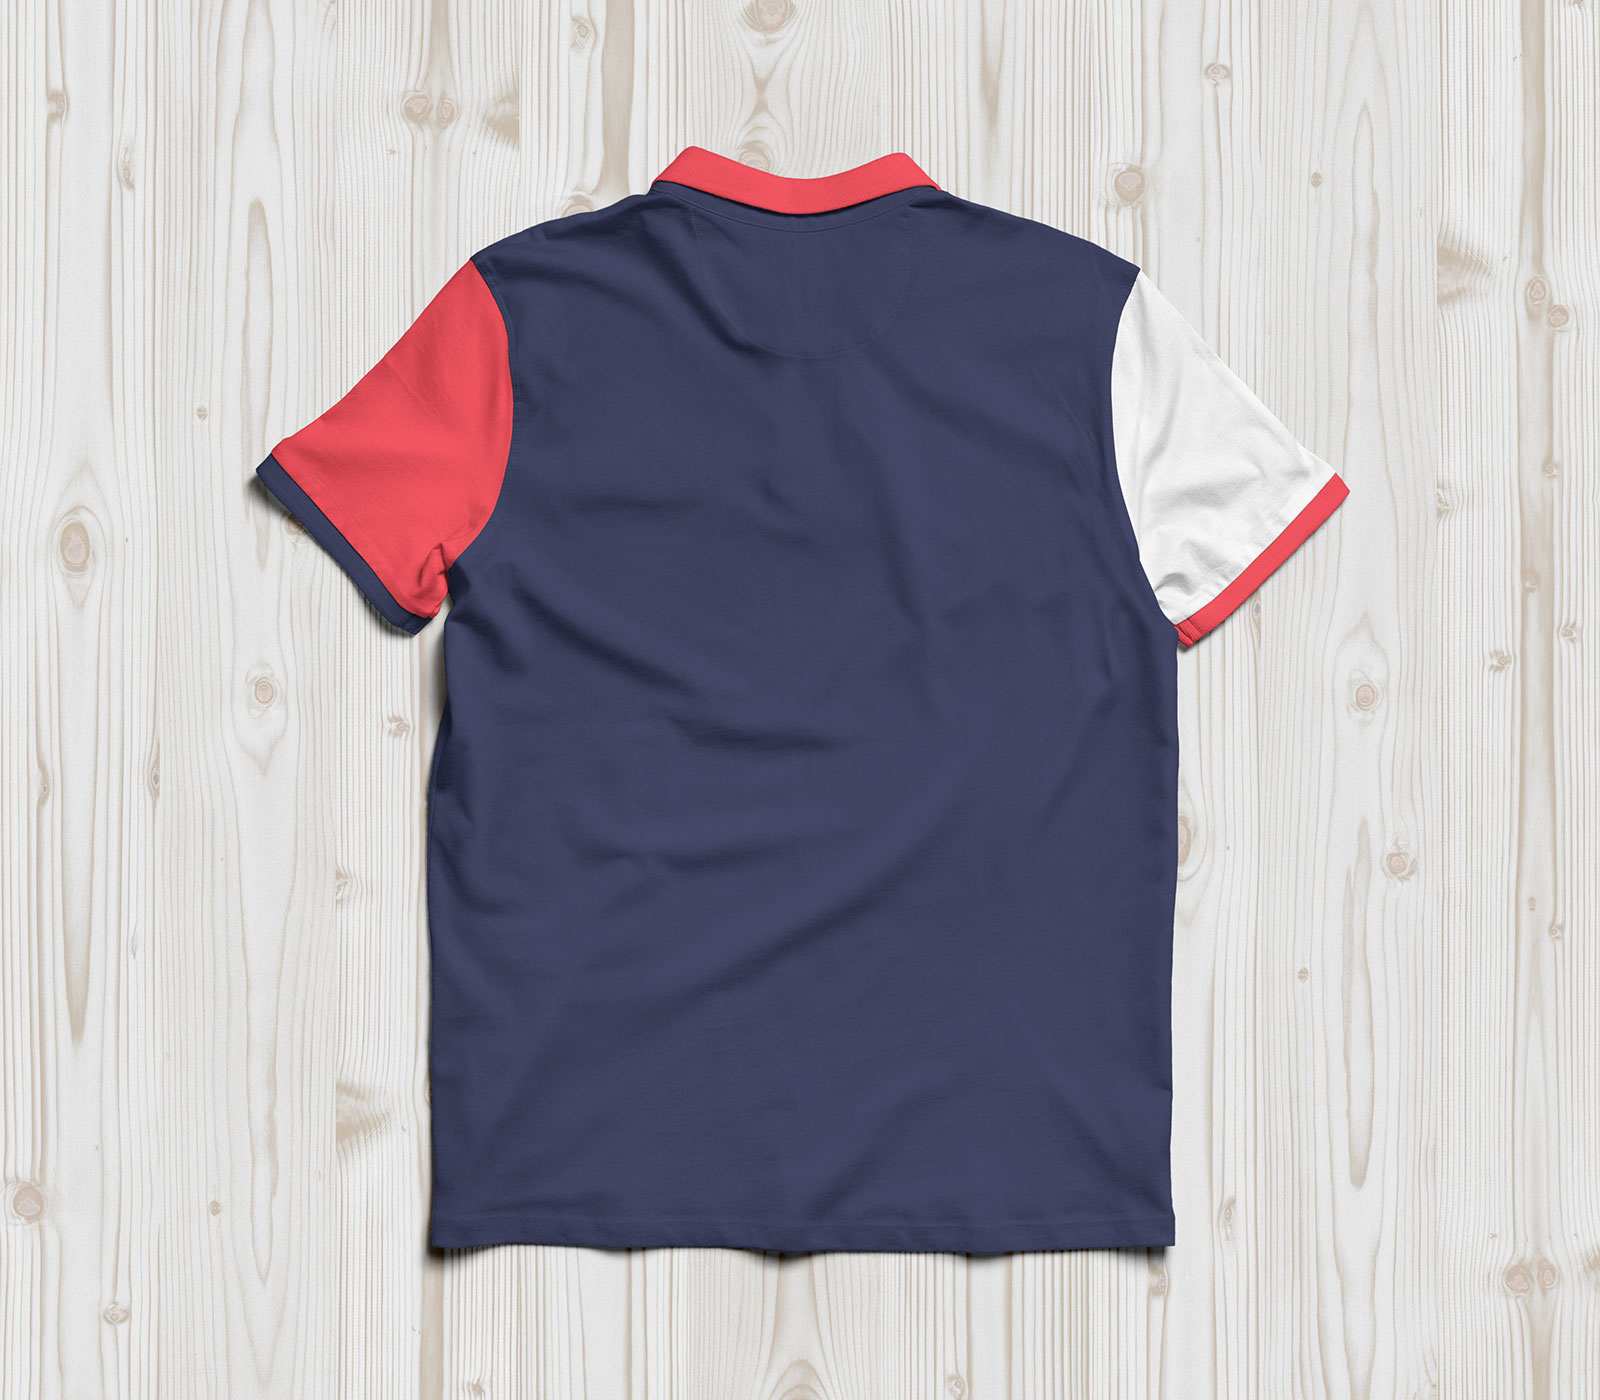 Free-Half-Sleeves-Polo-T-Shirt-Mockup-PSD-3